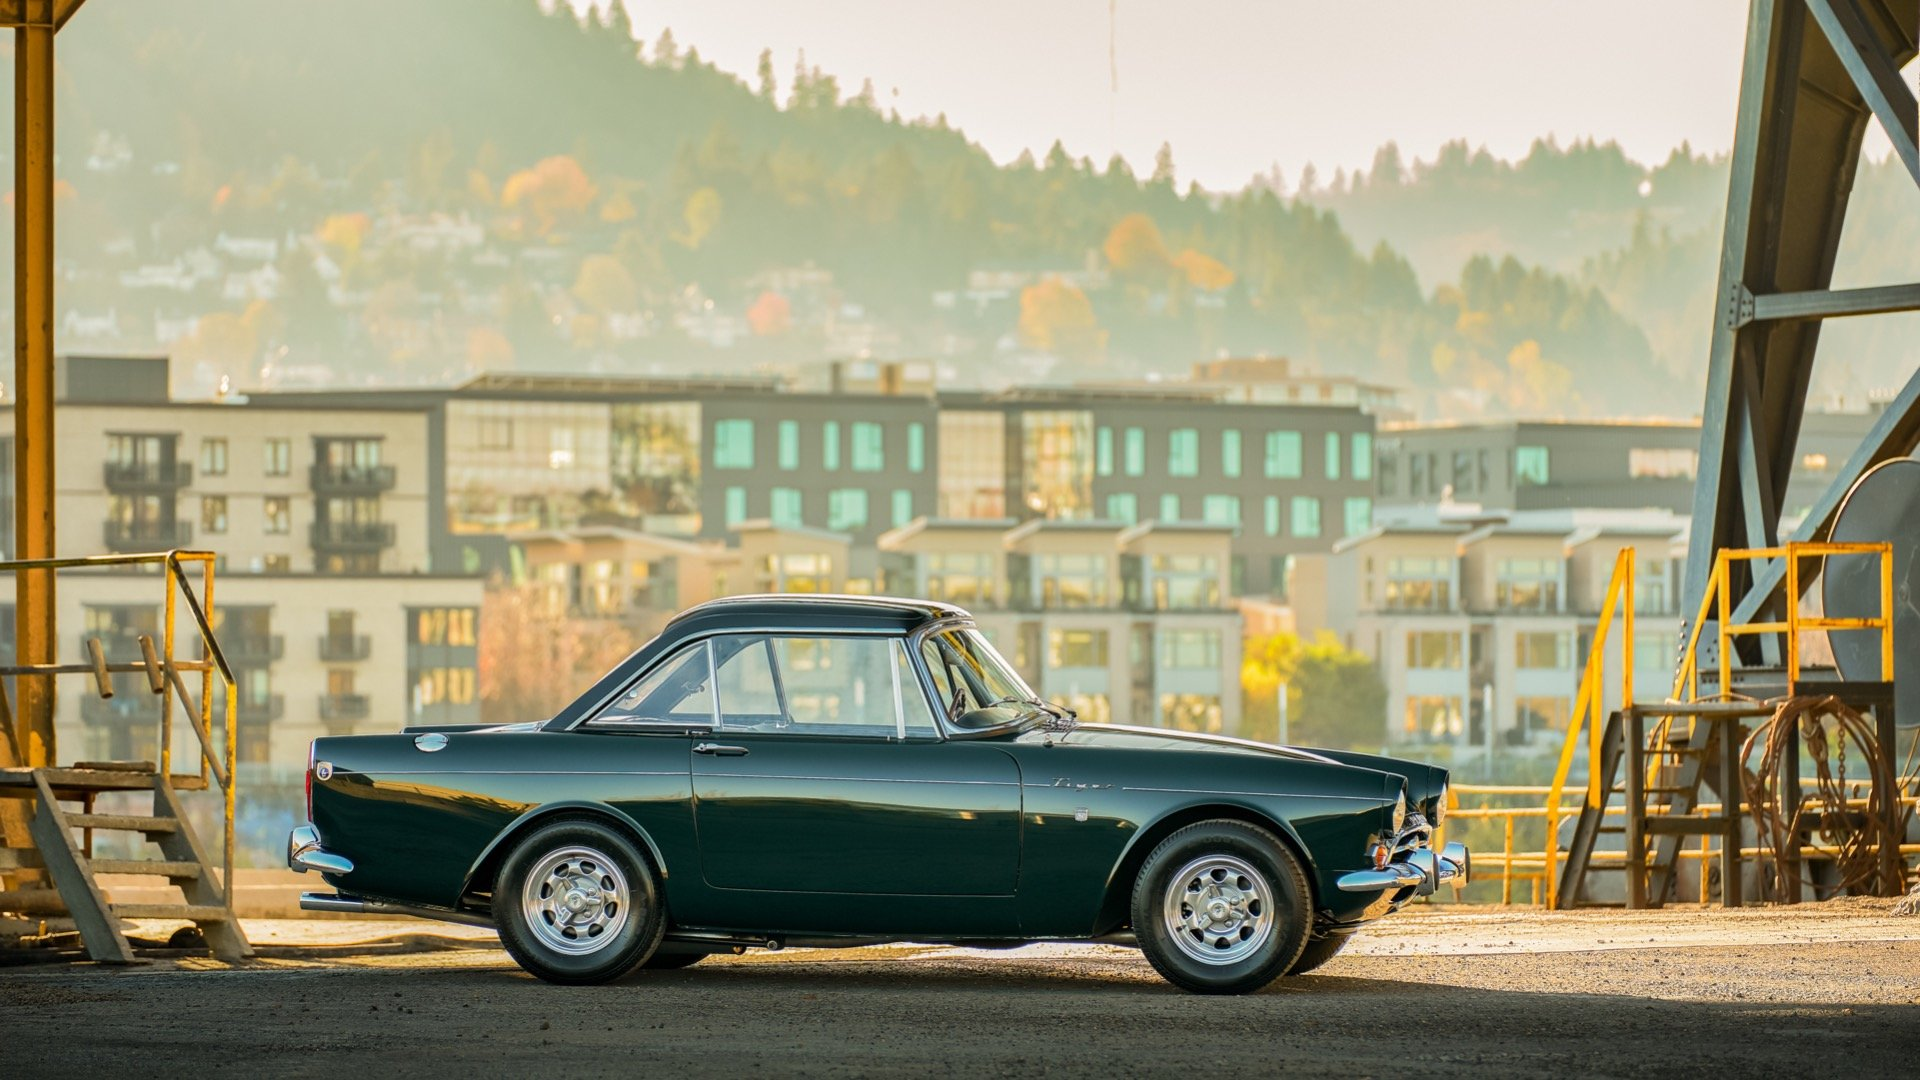 1965 Sunbeam Tiger MkI Roadster(~)Coupe with HardTop For Sale (picture 2 of 6)